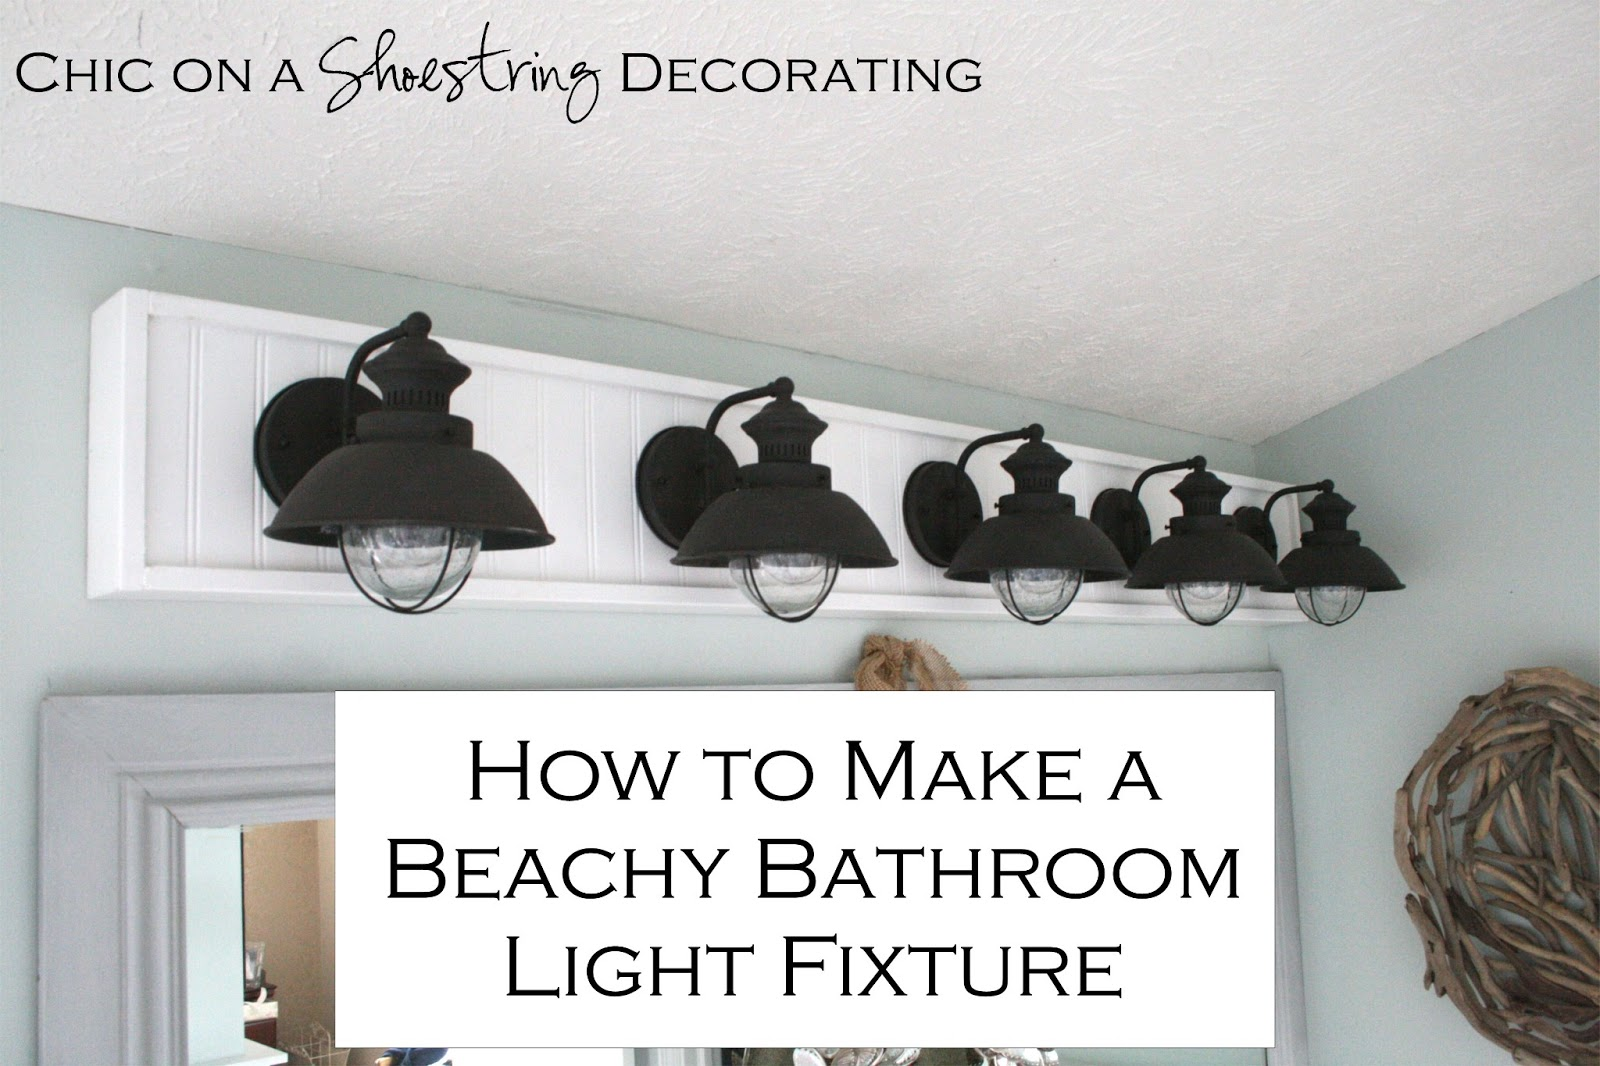 How To Make A Nightlight Chic On A Shoestring Decorating How To Build A Bathroom